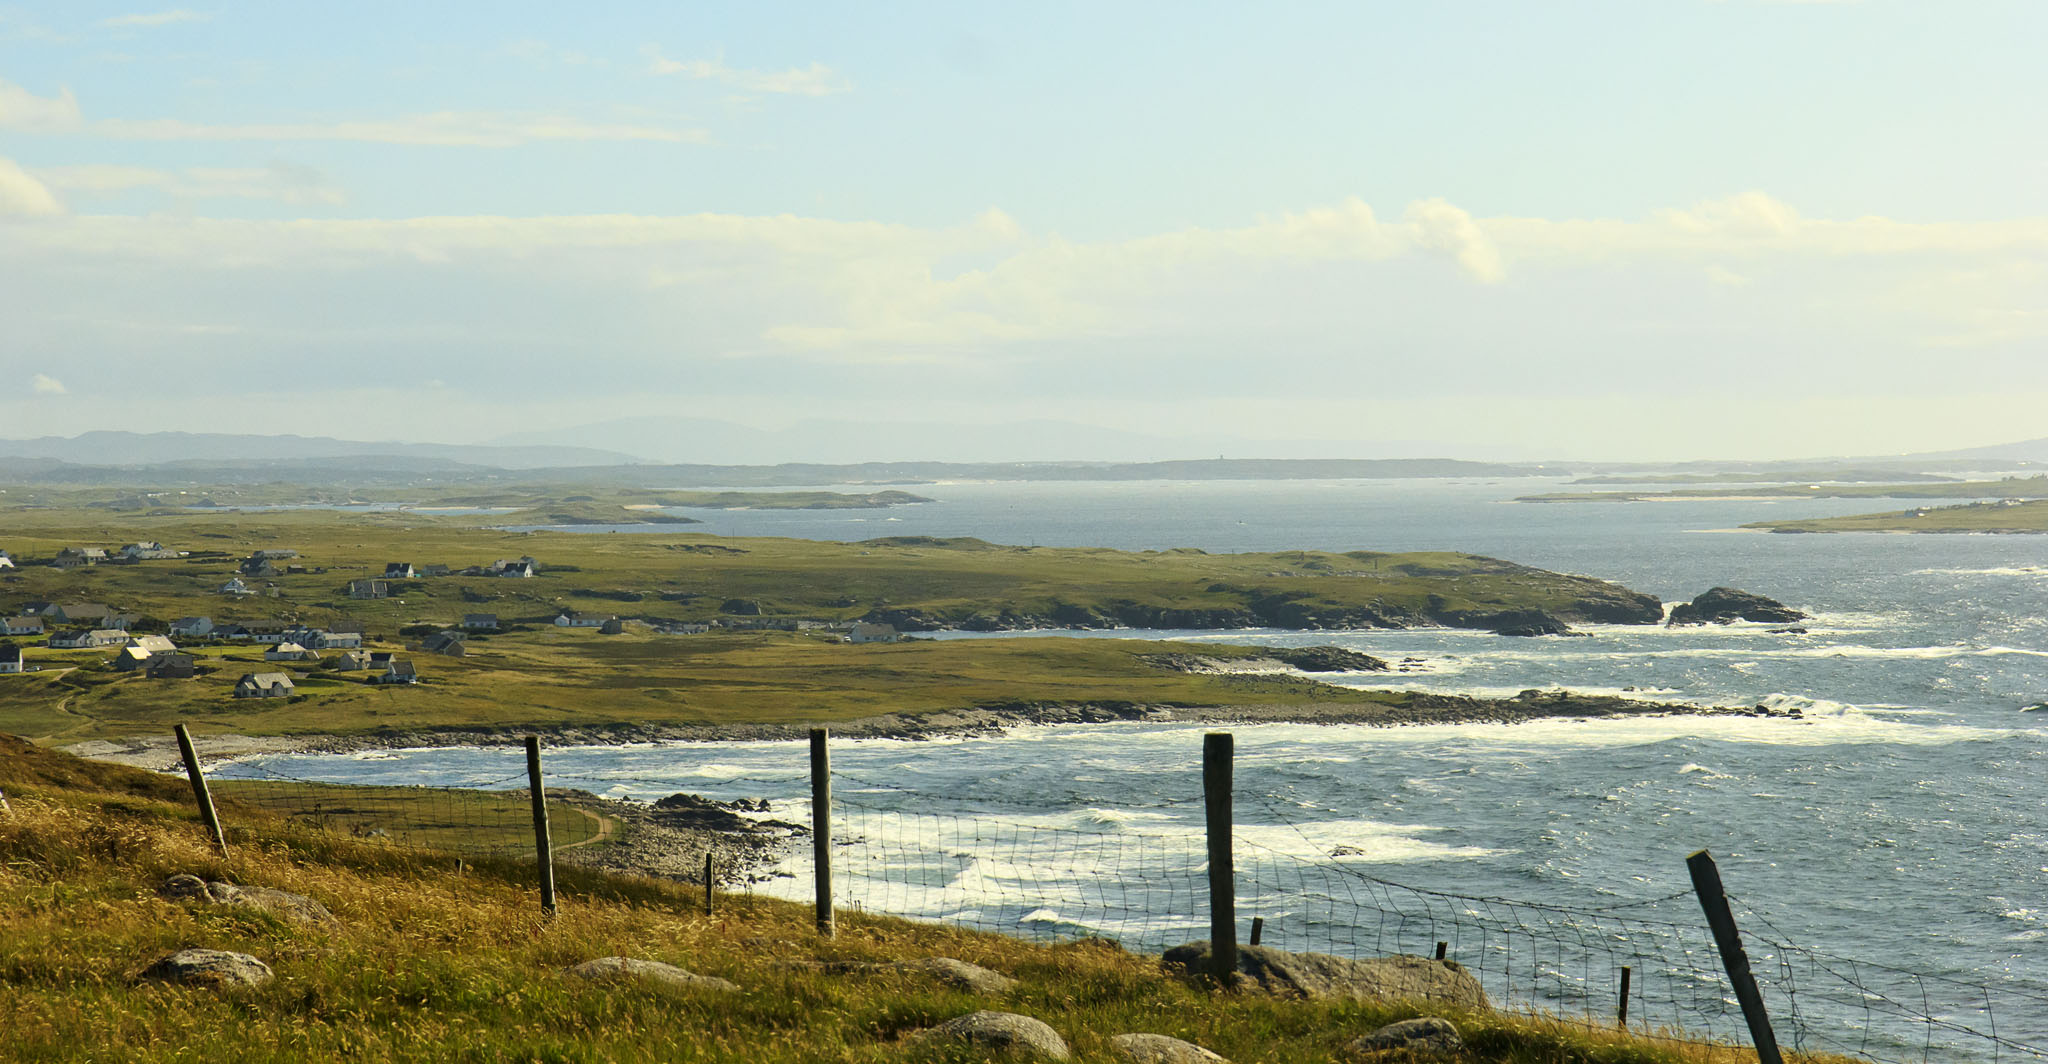 7 - CNOC FOLA , DONEGAL